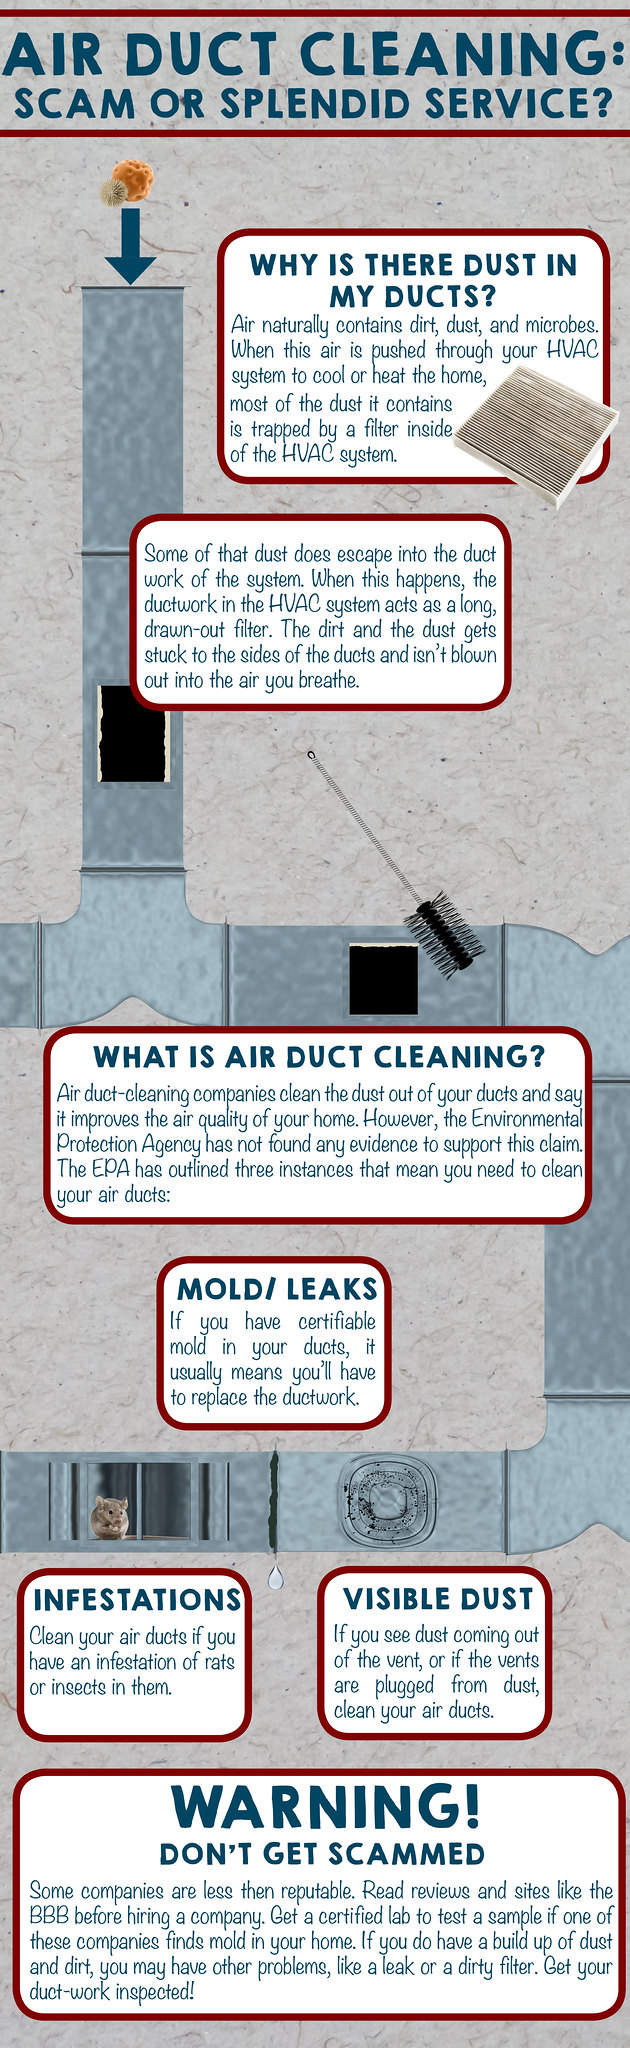 Air duct cleaning and a home warranty